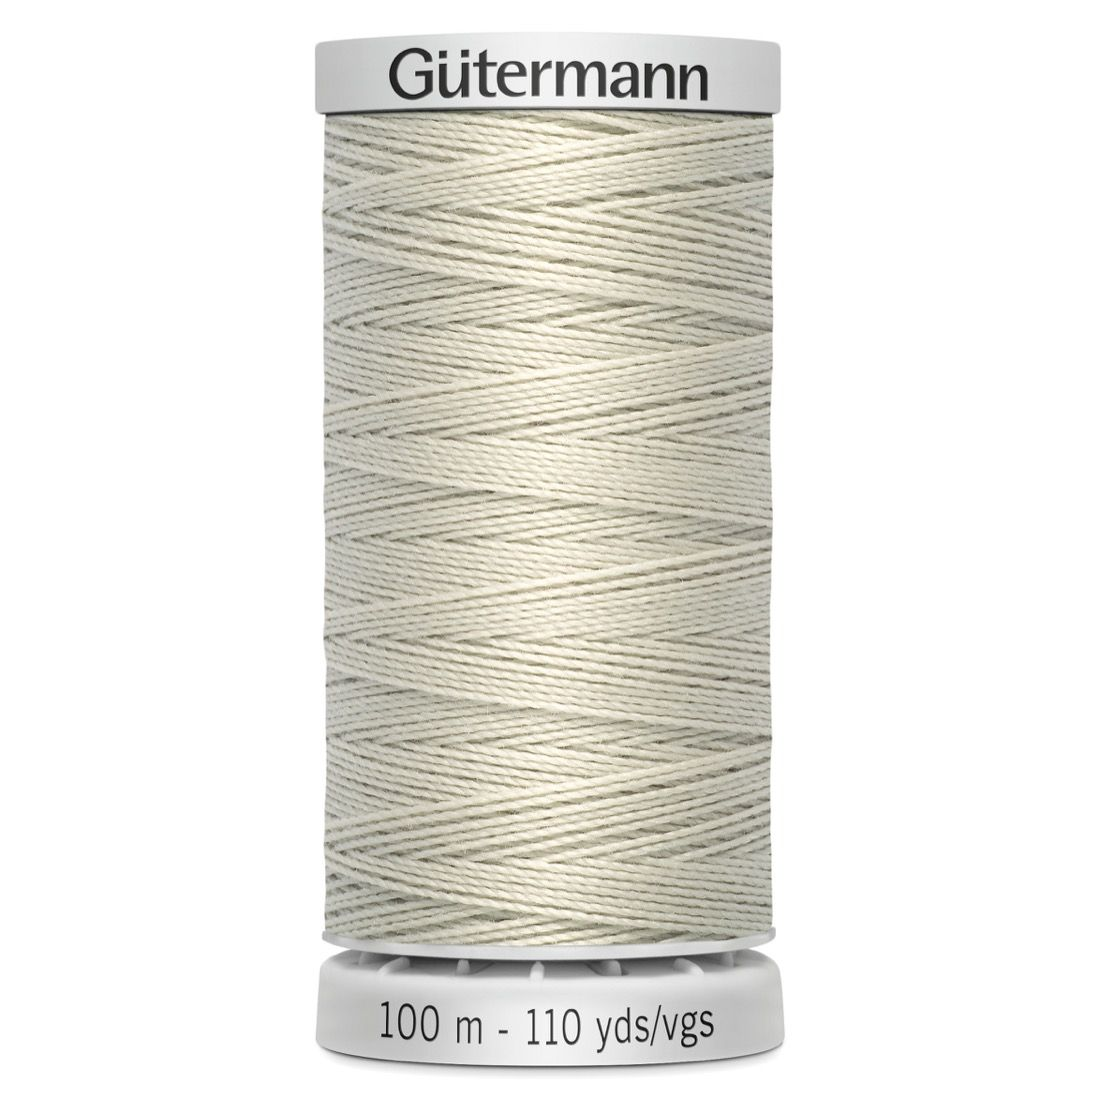 Gutermann Extra Strong Upholstery Thread - 100m - 299